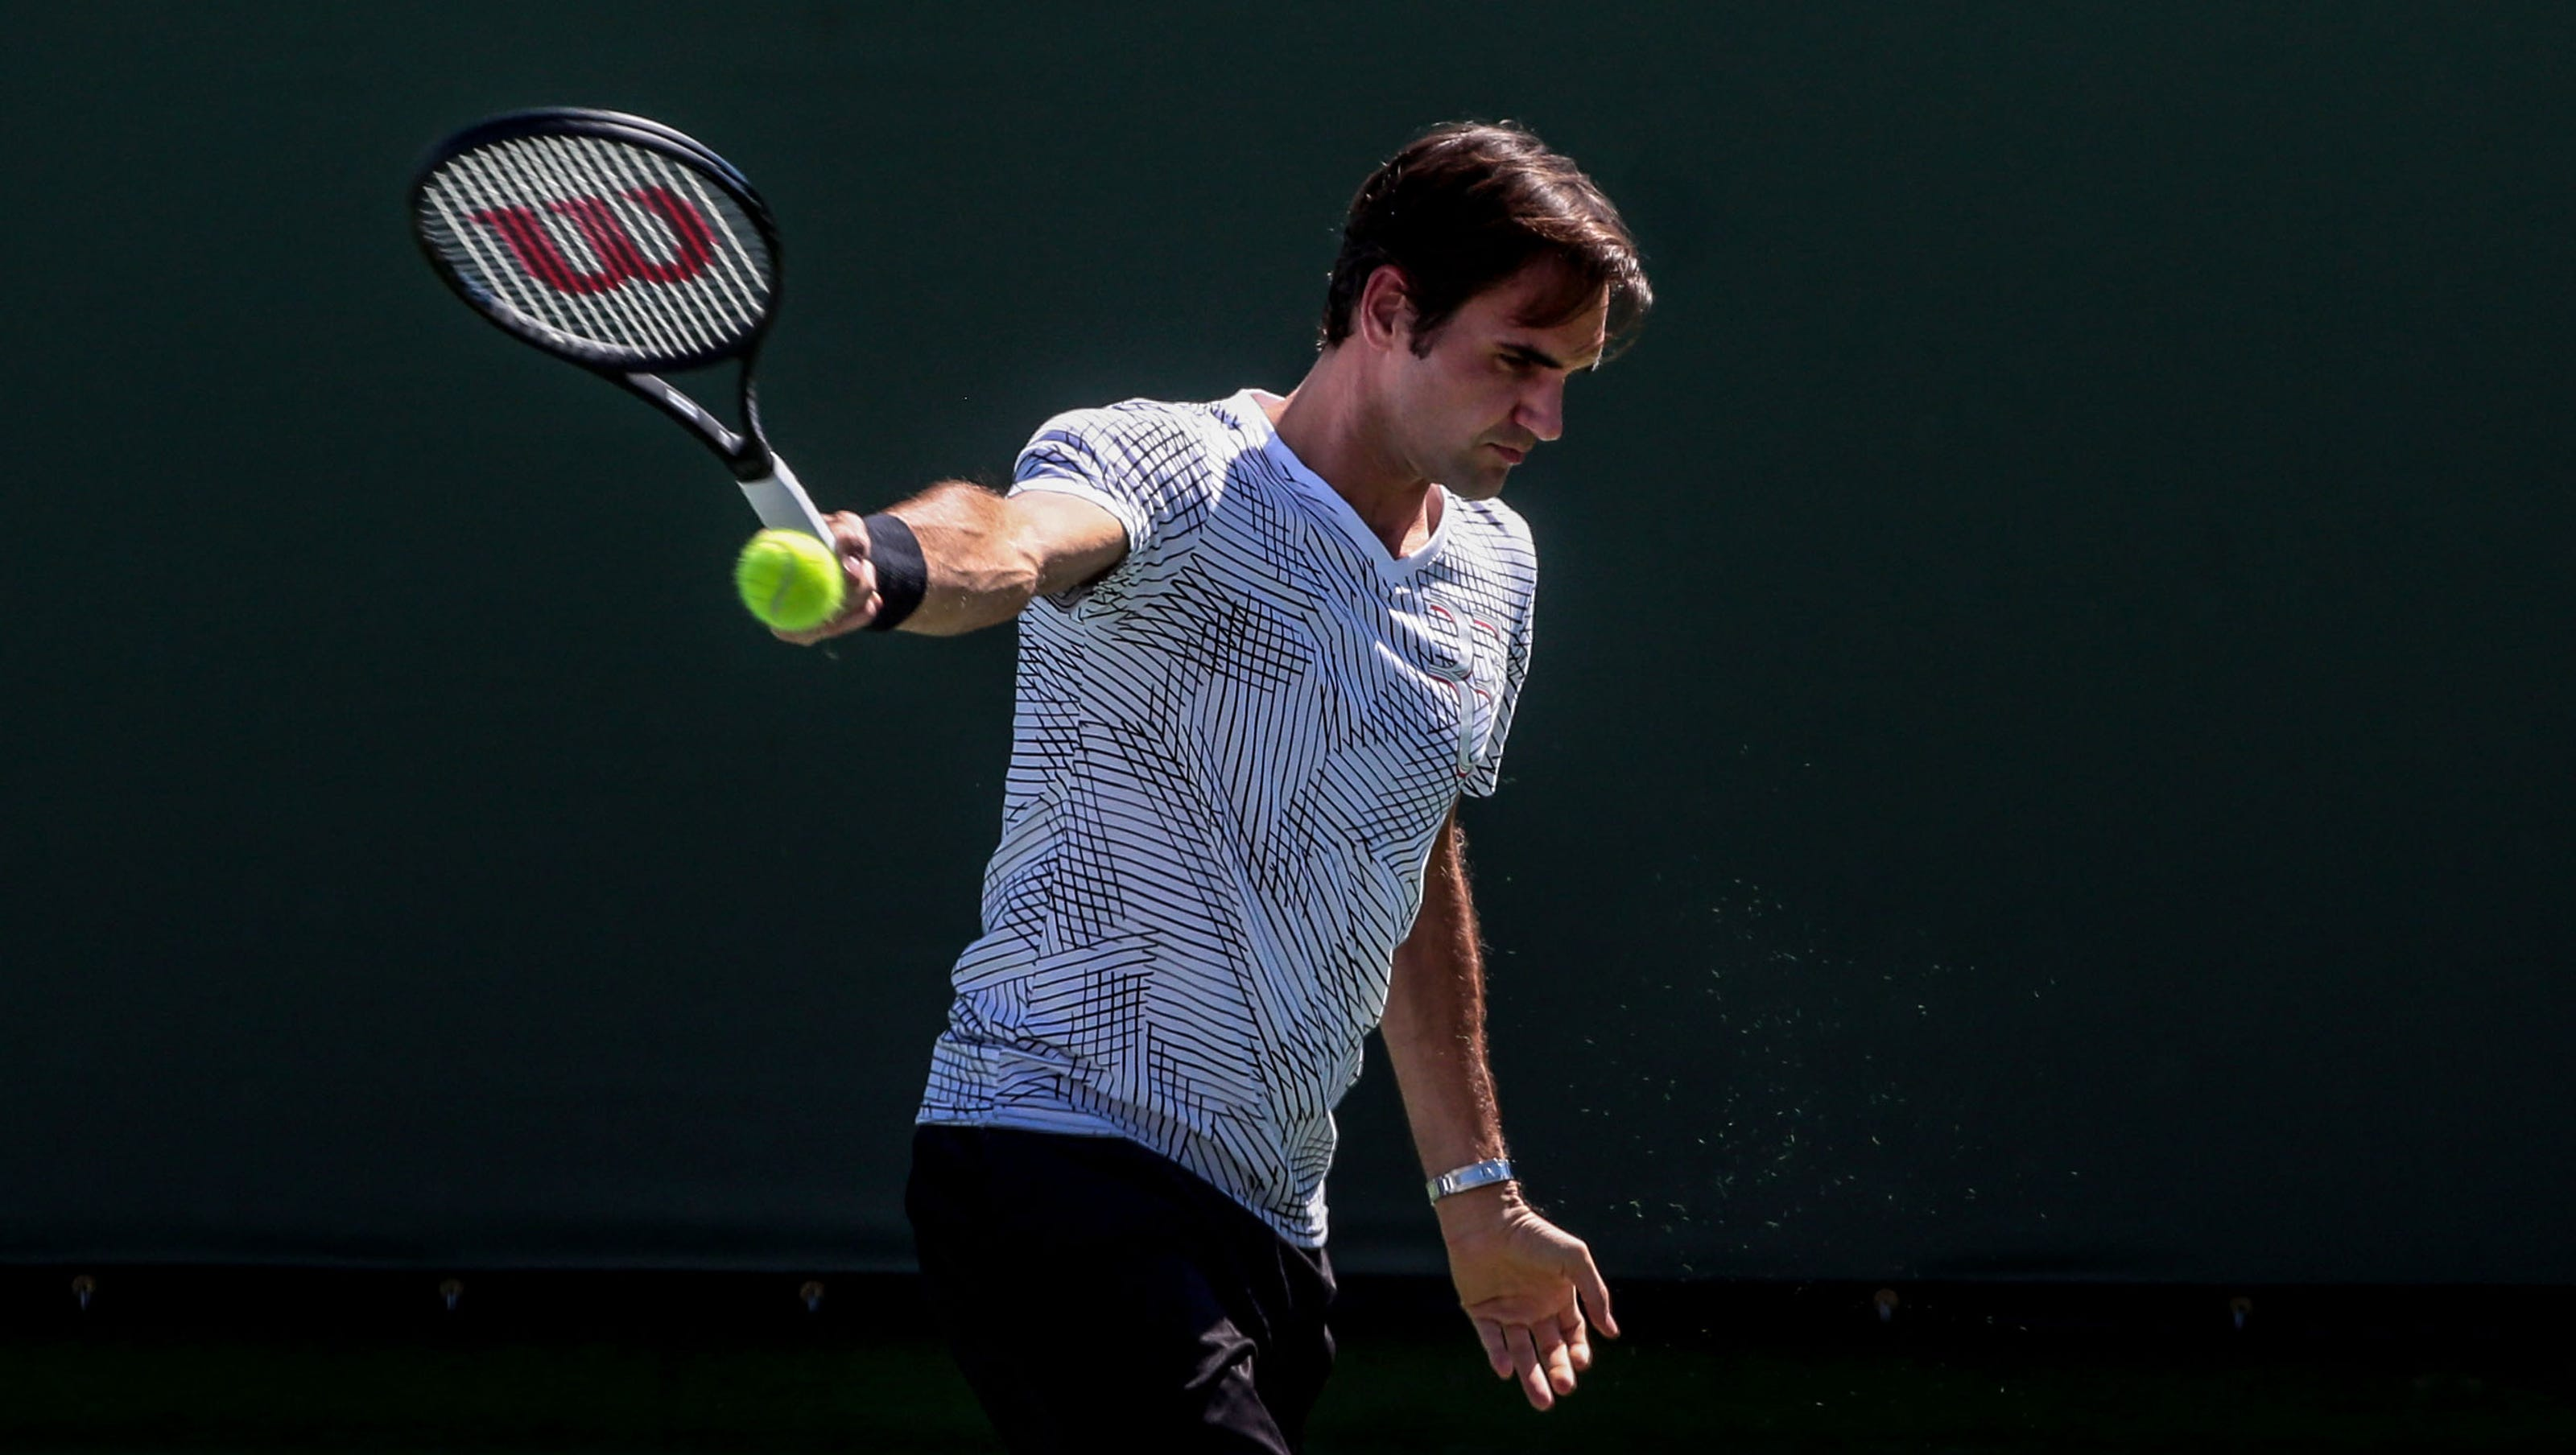 Roger Federer Pinterest: At 35, Roger Federer Is Still Defying His Age